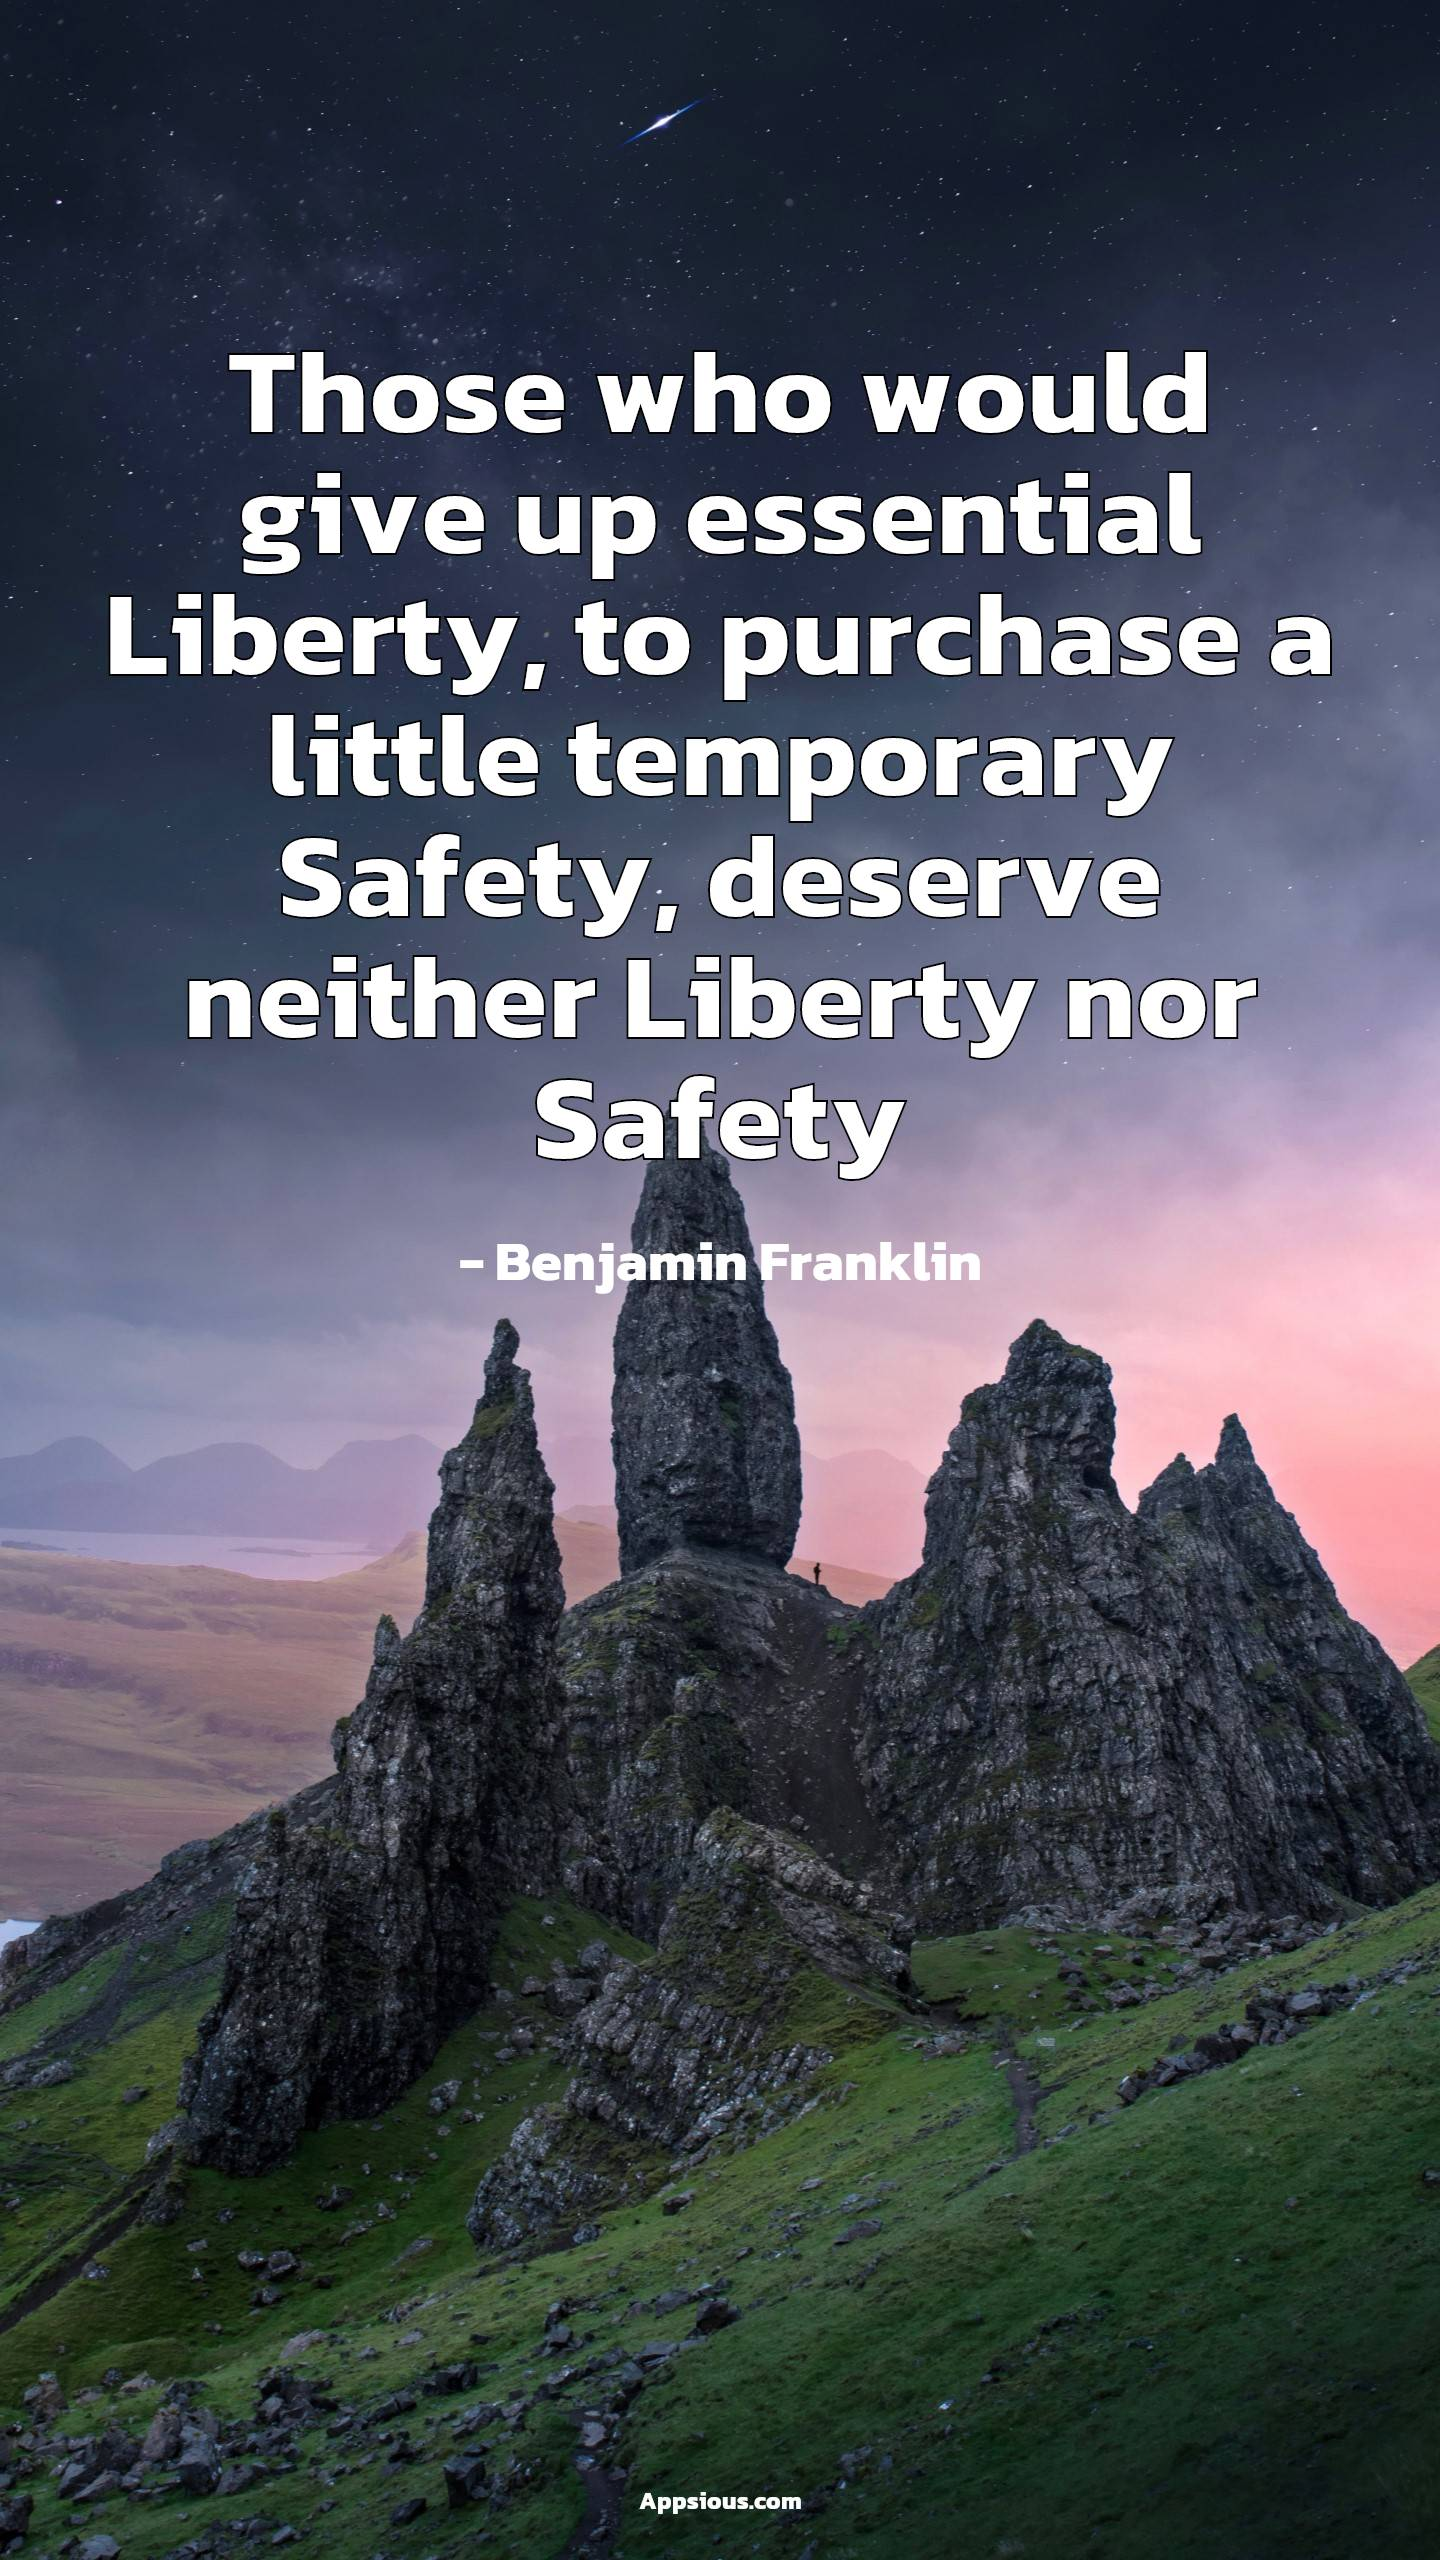 Those who would give up essential Liberty, to purchase a little temporary Safety, deserve neither Liberty nor Safety